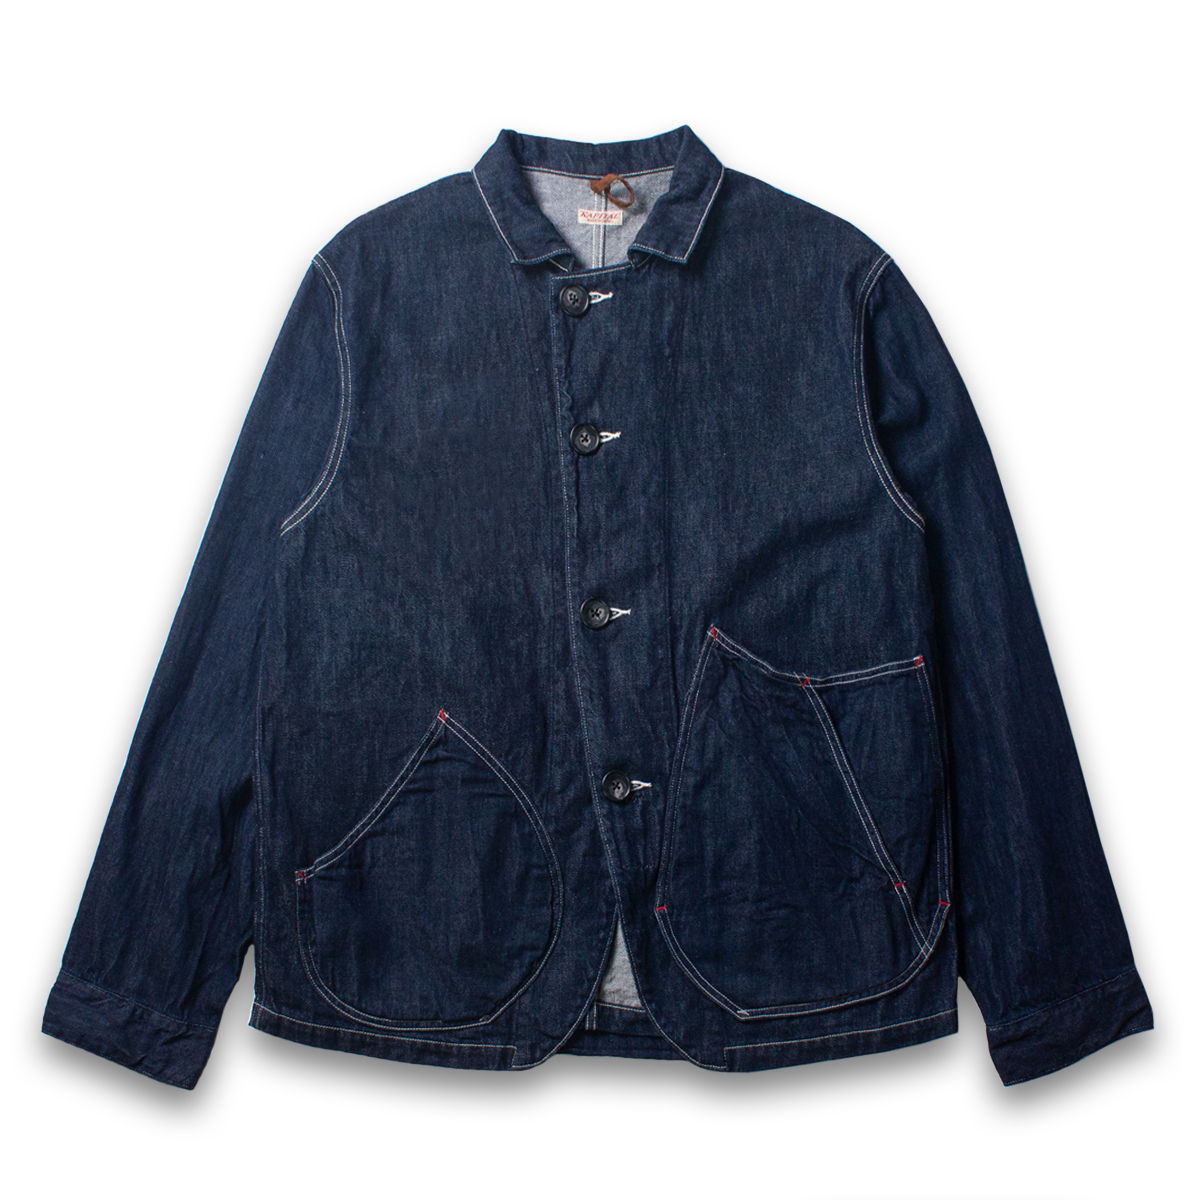 [KAPITAL] 12oz DENIM x 8oz DENIM RINGO COVERALL 'INDIGO